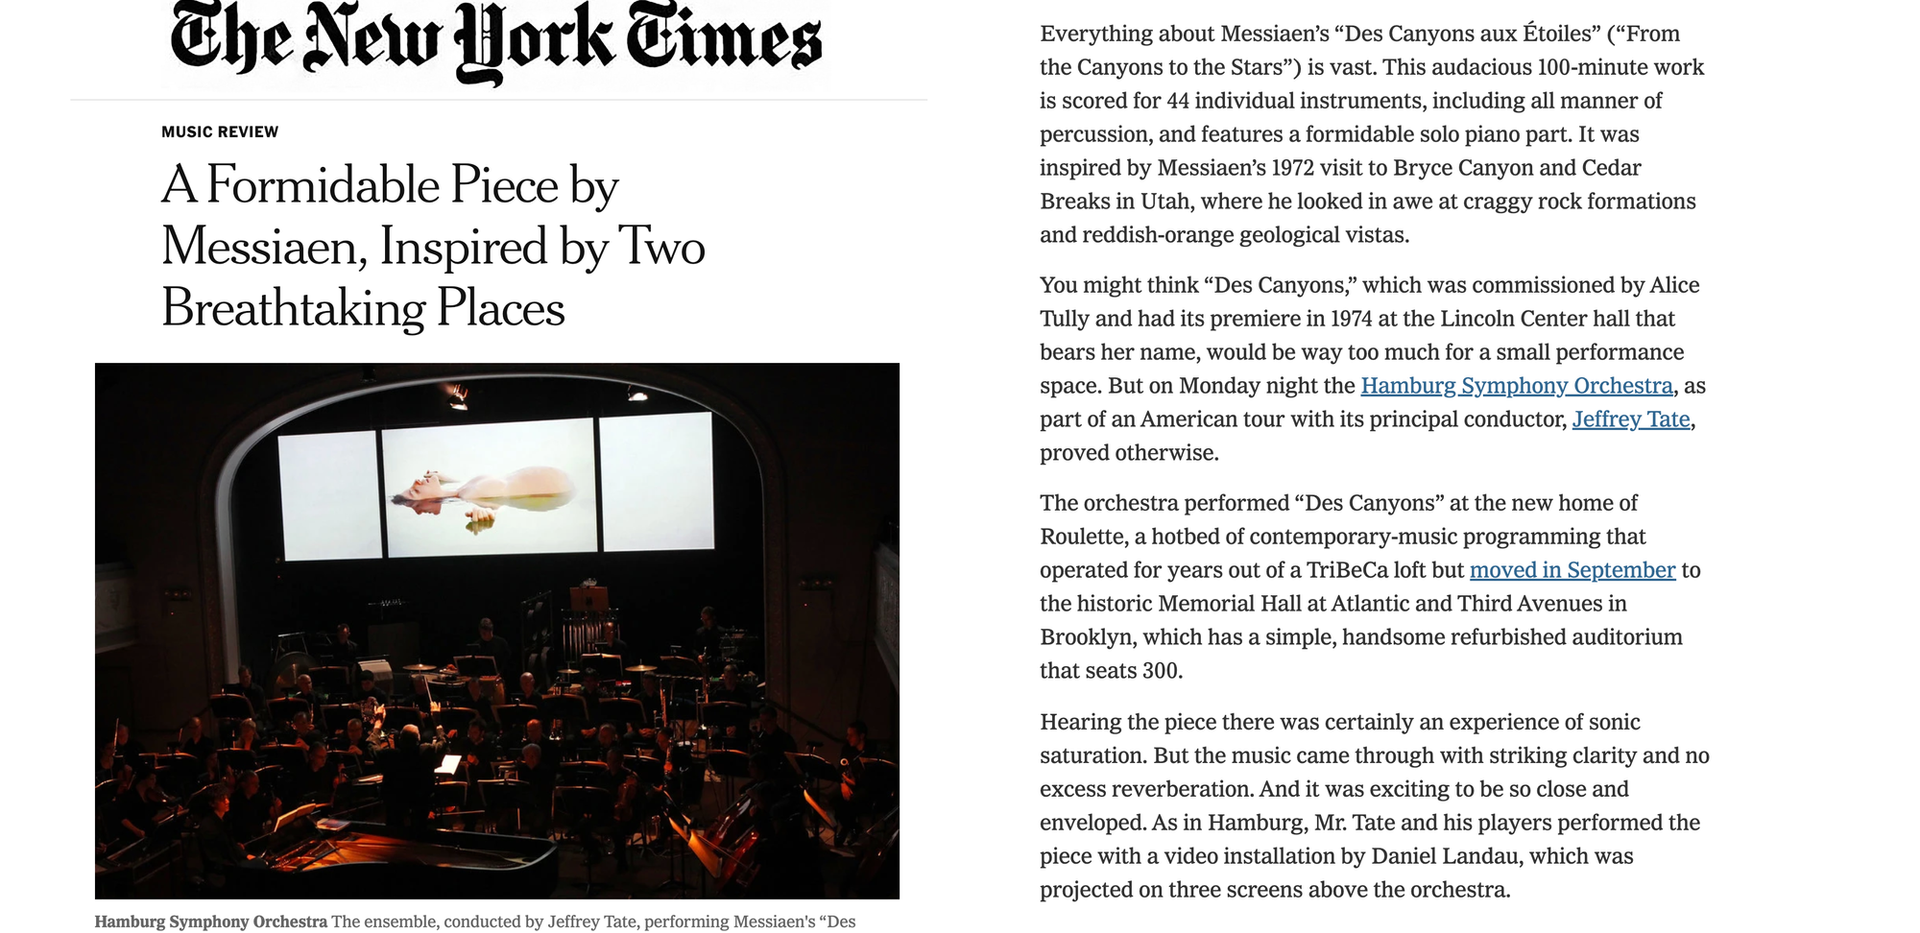 The New York Times - January 24, 2012